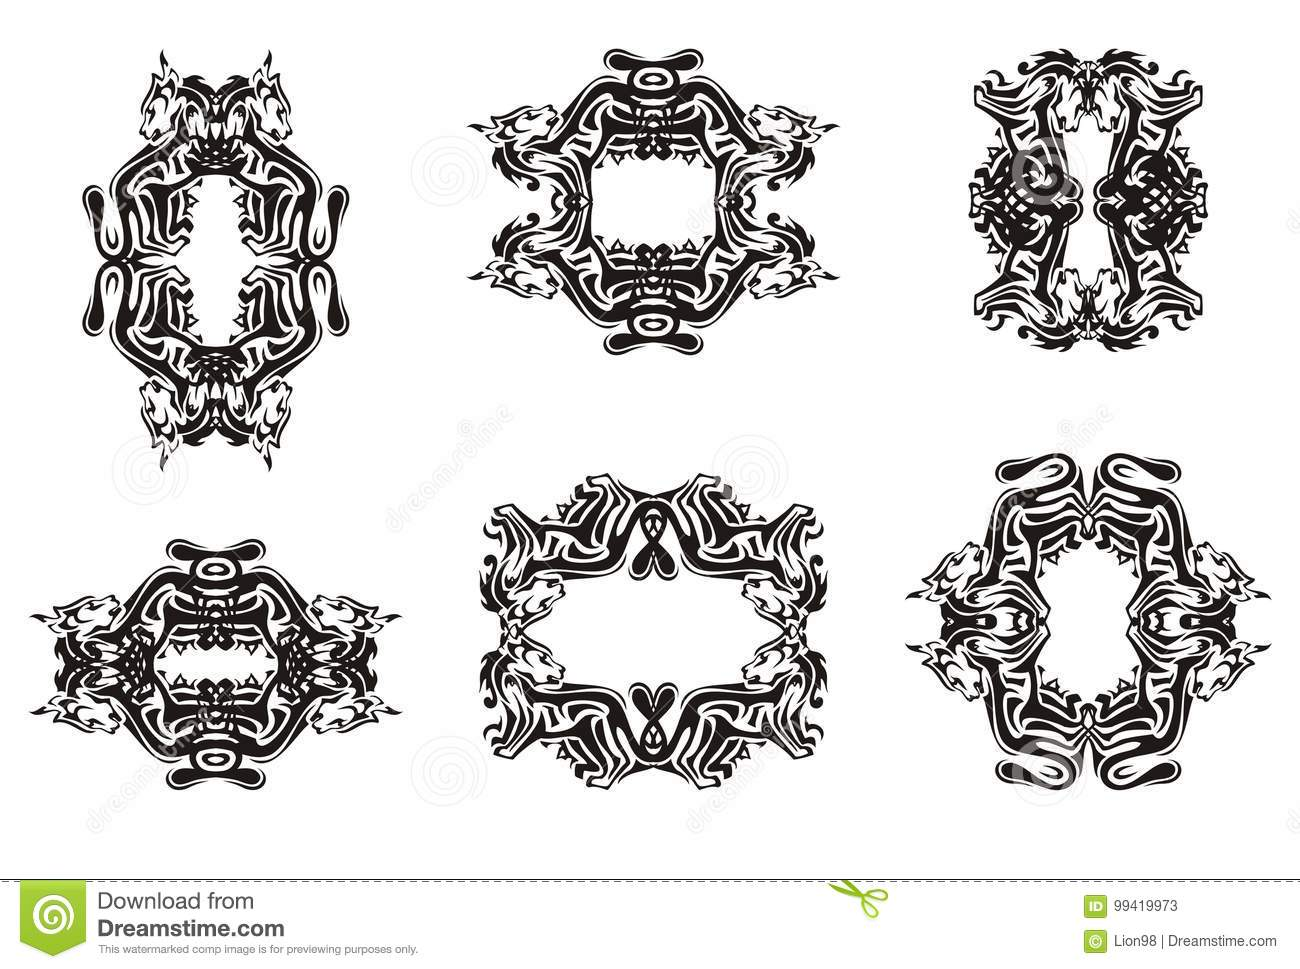 Decorative cat frames stock vector. Illustration of curl - 99419973